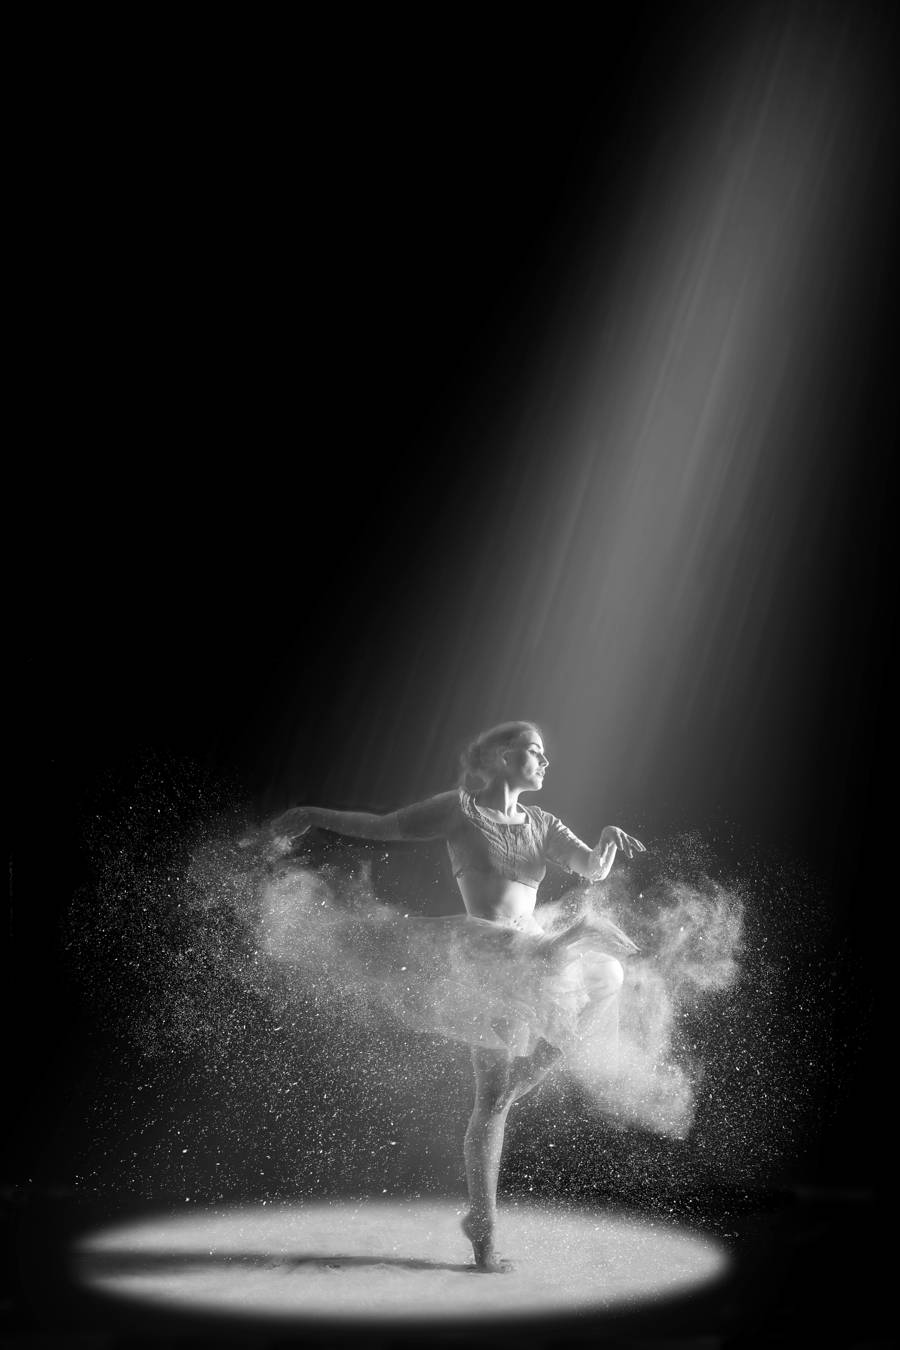 Strictly Come Dusting ... / Photography by DigiSnapper, Model Cariad Celis, Makeup by Cariad Celis, Post processing by DigiSnapper, Taken at DigiSnapper, Hair styling by Cariad Celis, Assisted by KieranDahl / Uploaded 12th December 2019 @ 11:07 AM